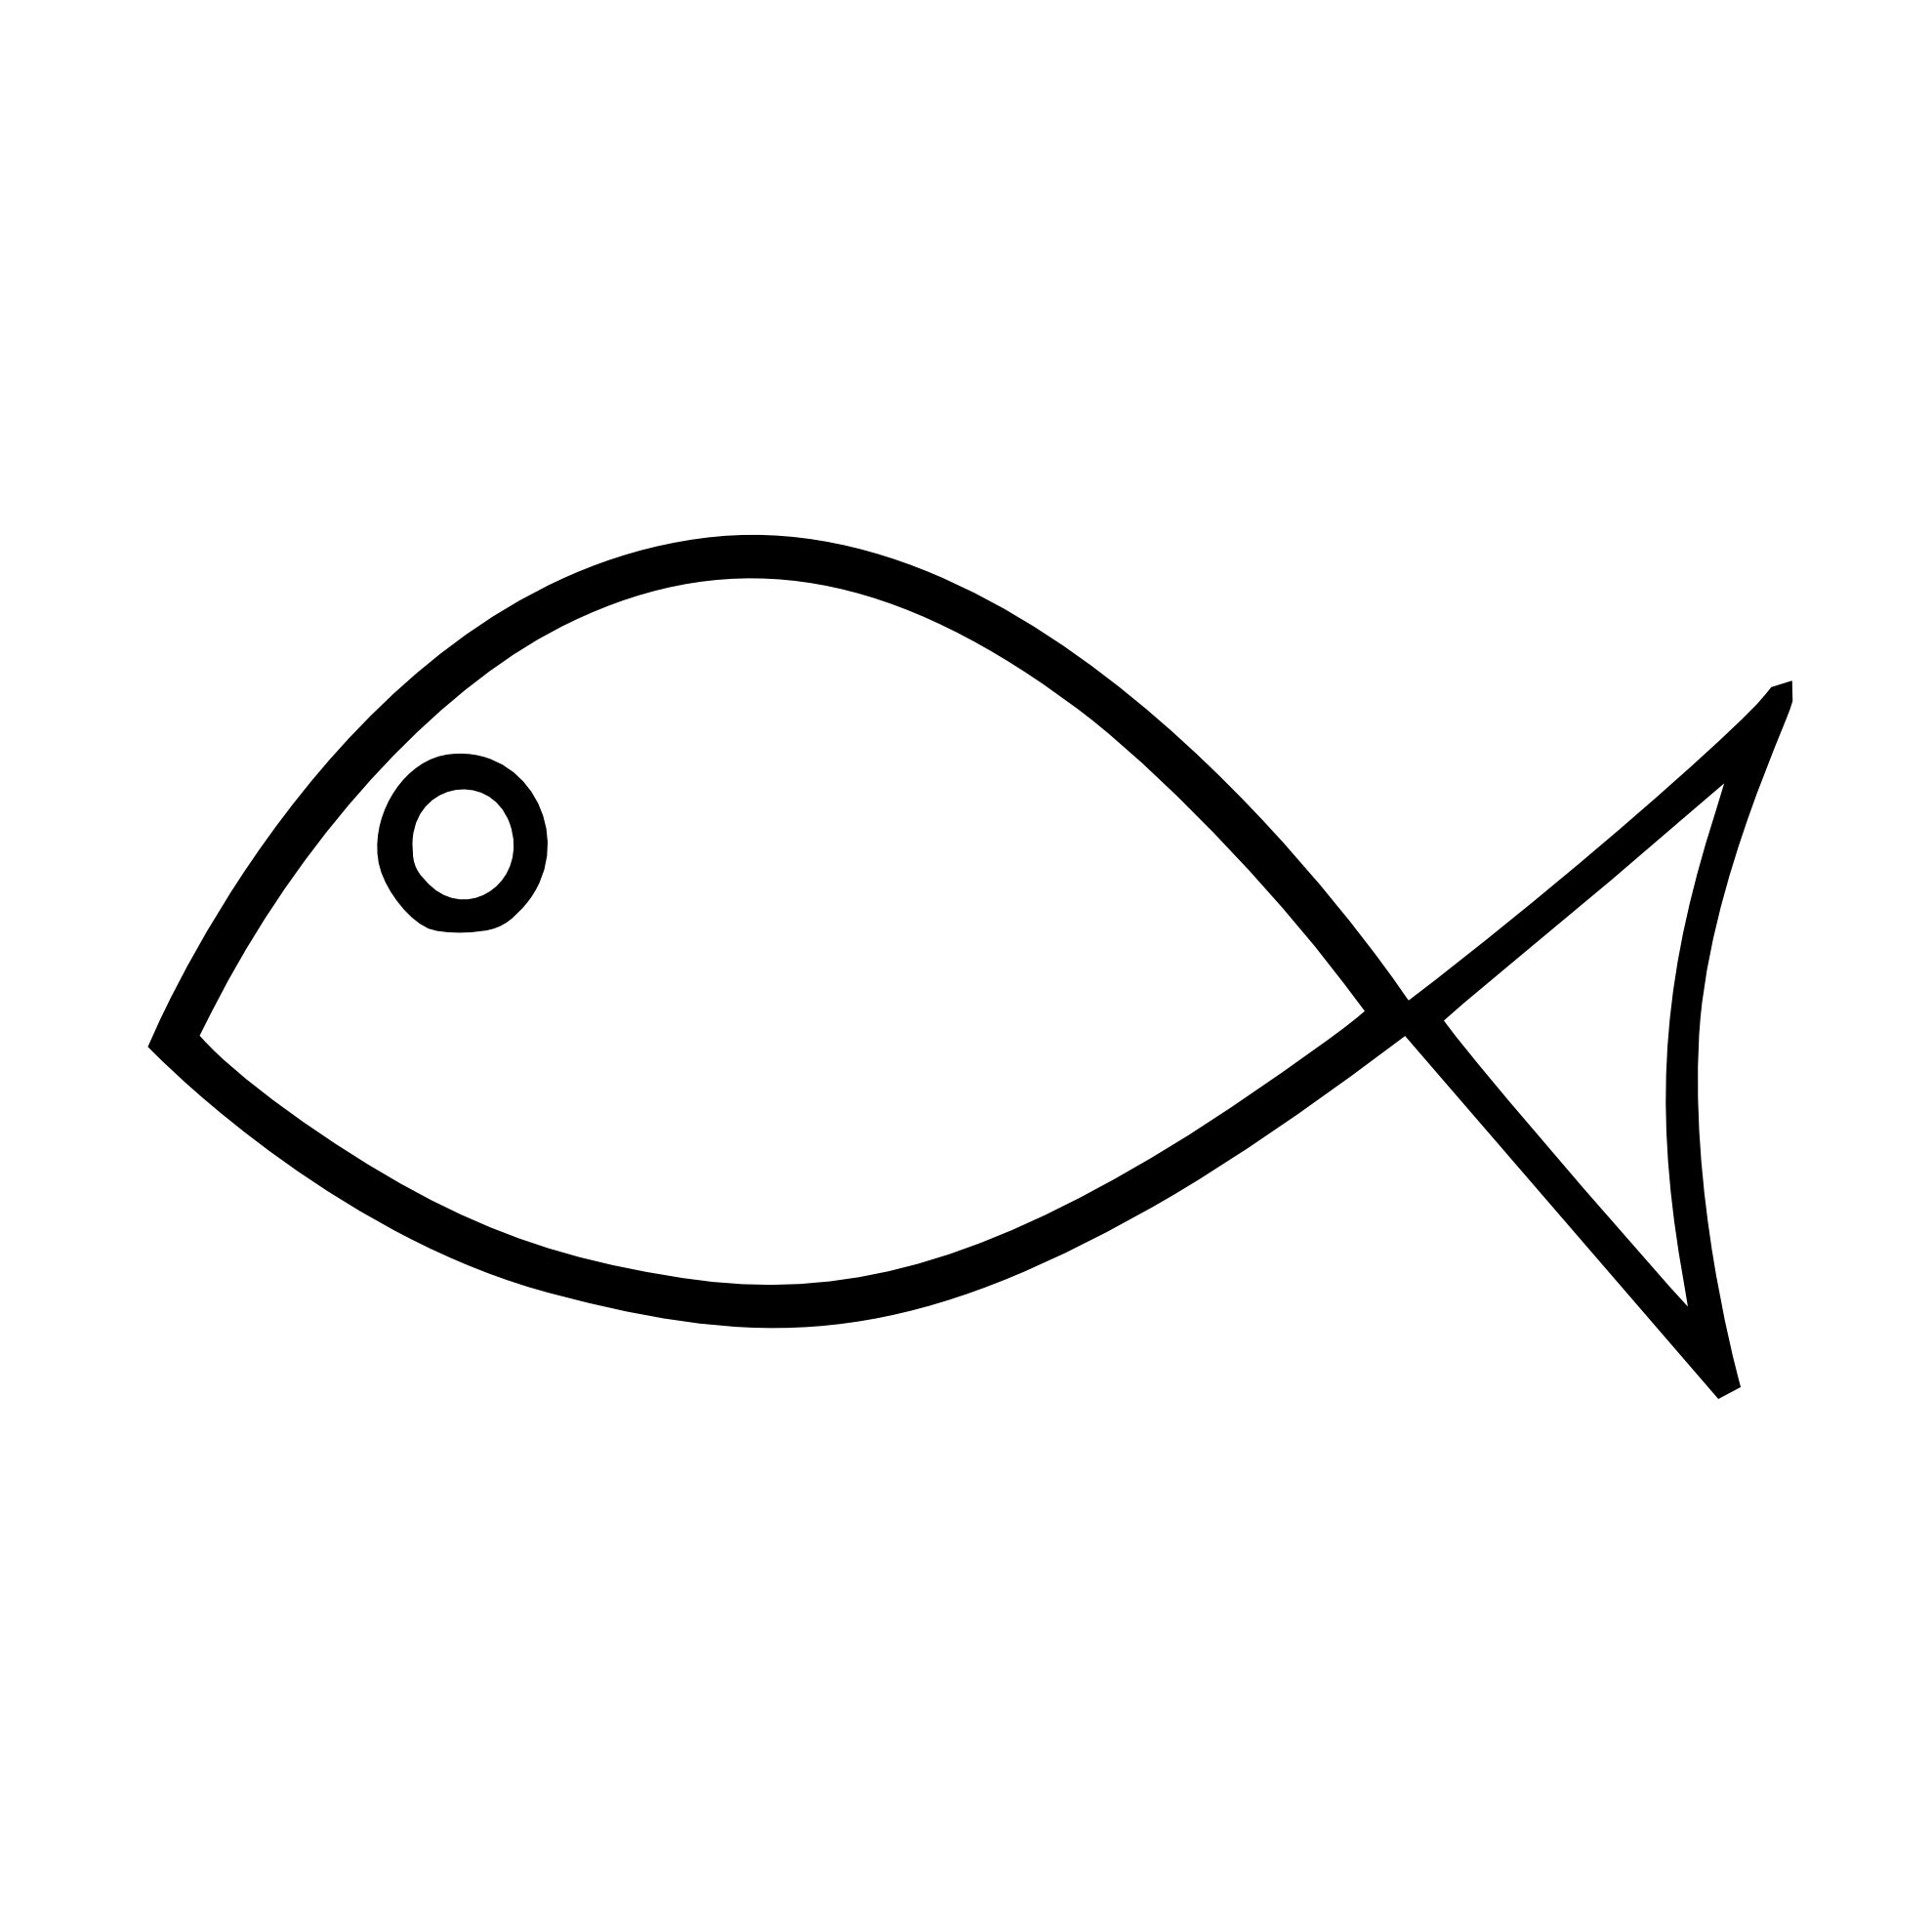 Simple Line Drawing Clip Art : Simple fish drawings clipart best